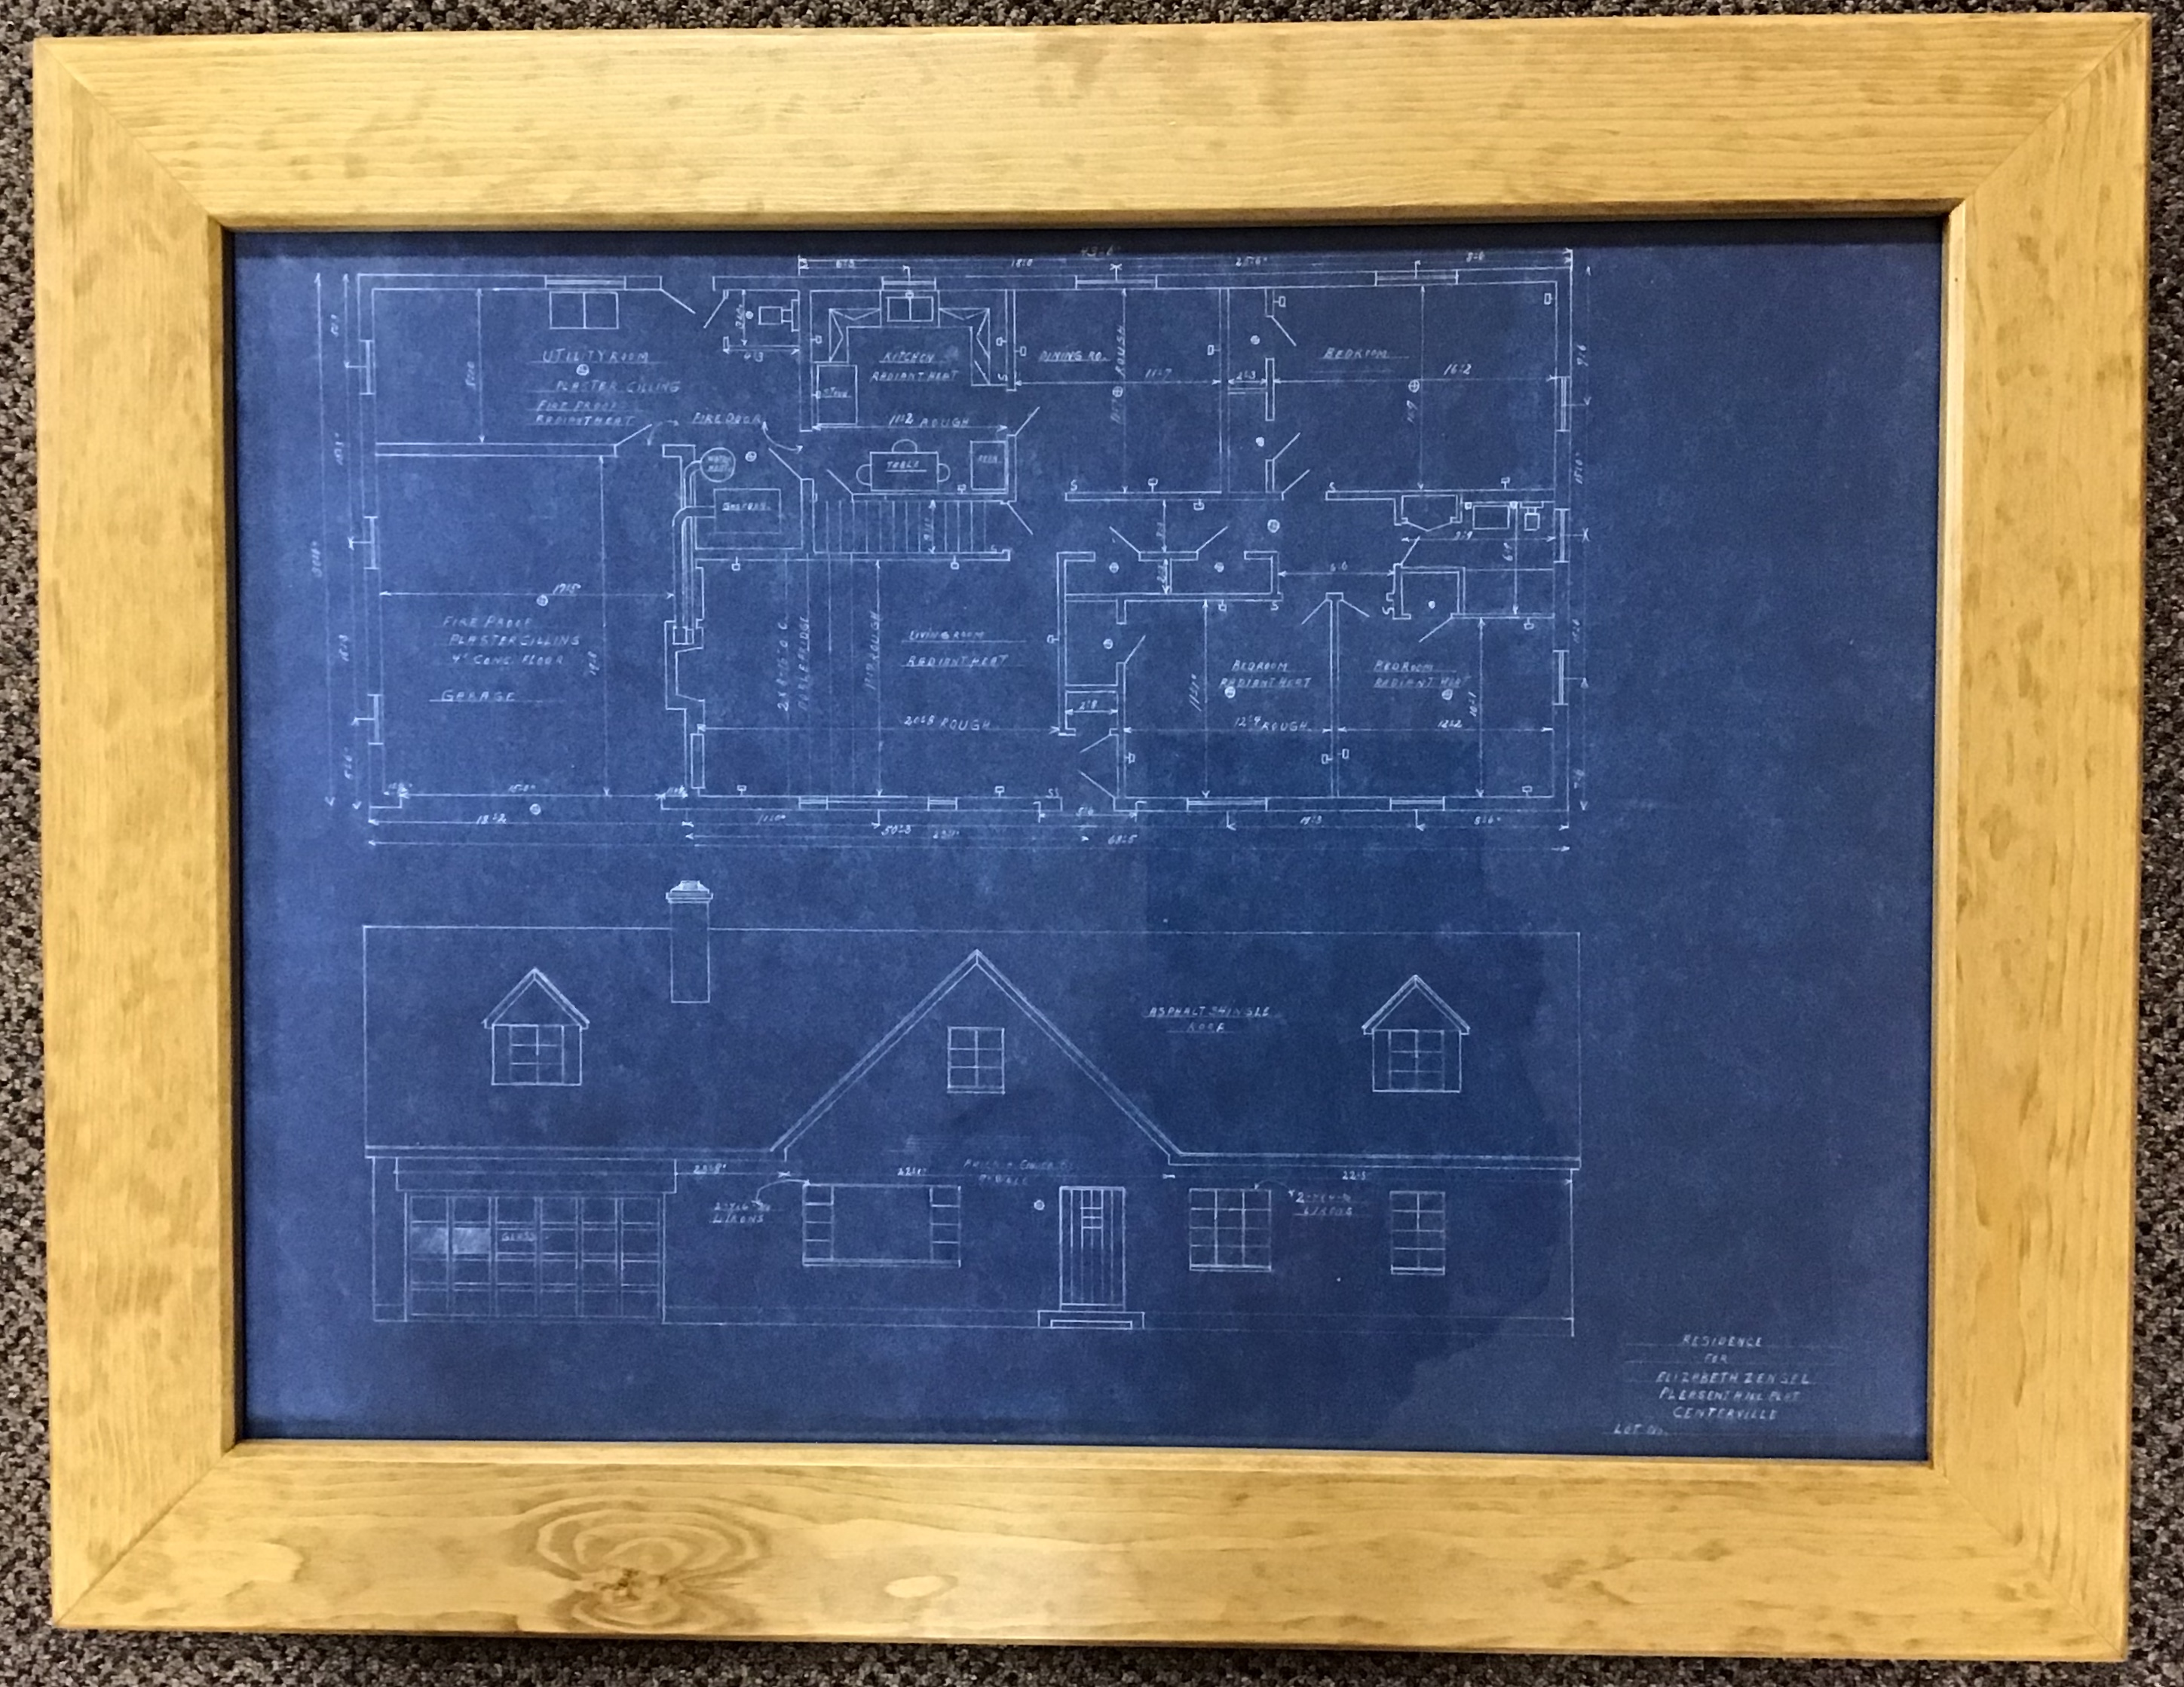 Framing Old Blue Prints-9406893a-baa8-4dbb-9b4c-6b6936543727.jpeg